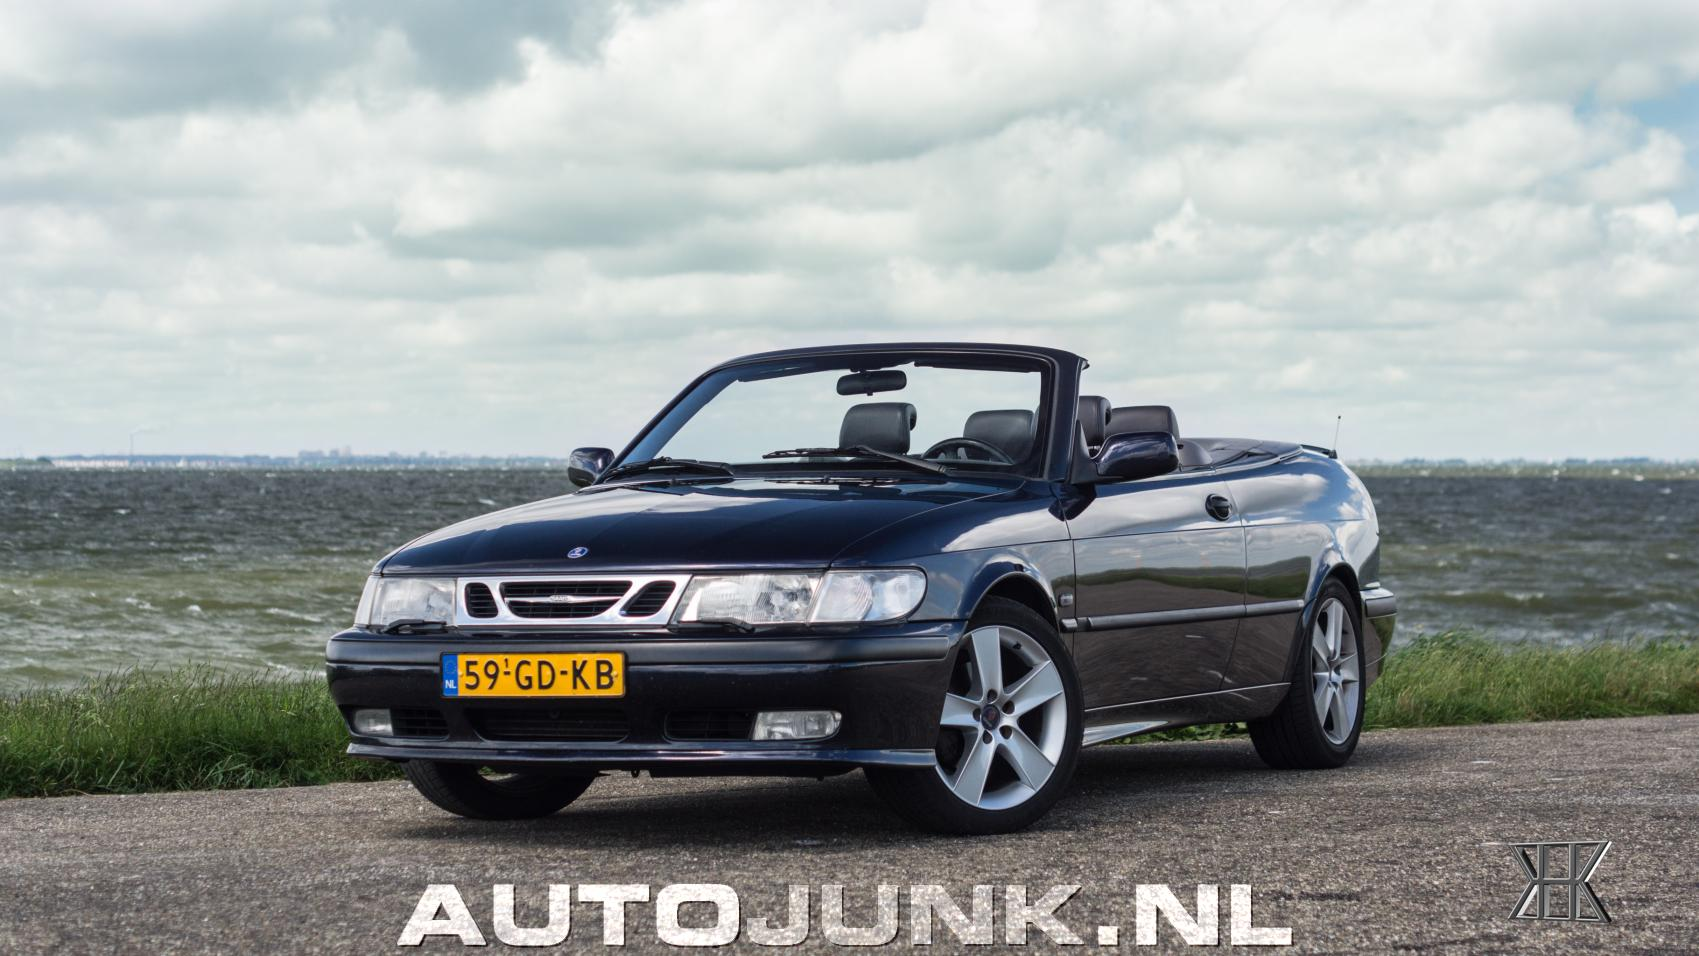 saab 9 3 cabrio mijn auto foto 39 s 173025. Black Bedroom Furniture Sets. Home Design Ideas